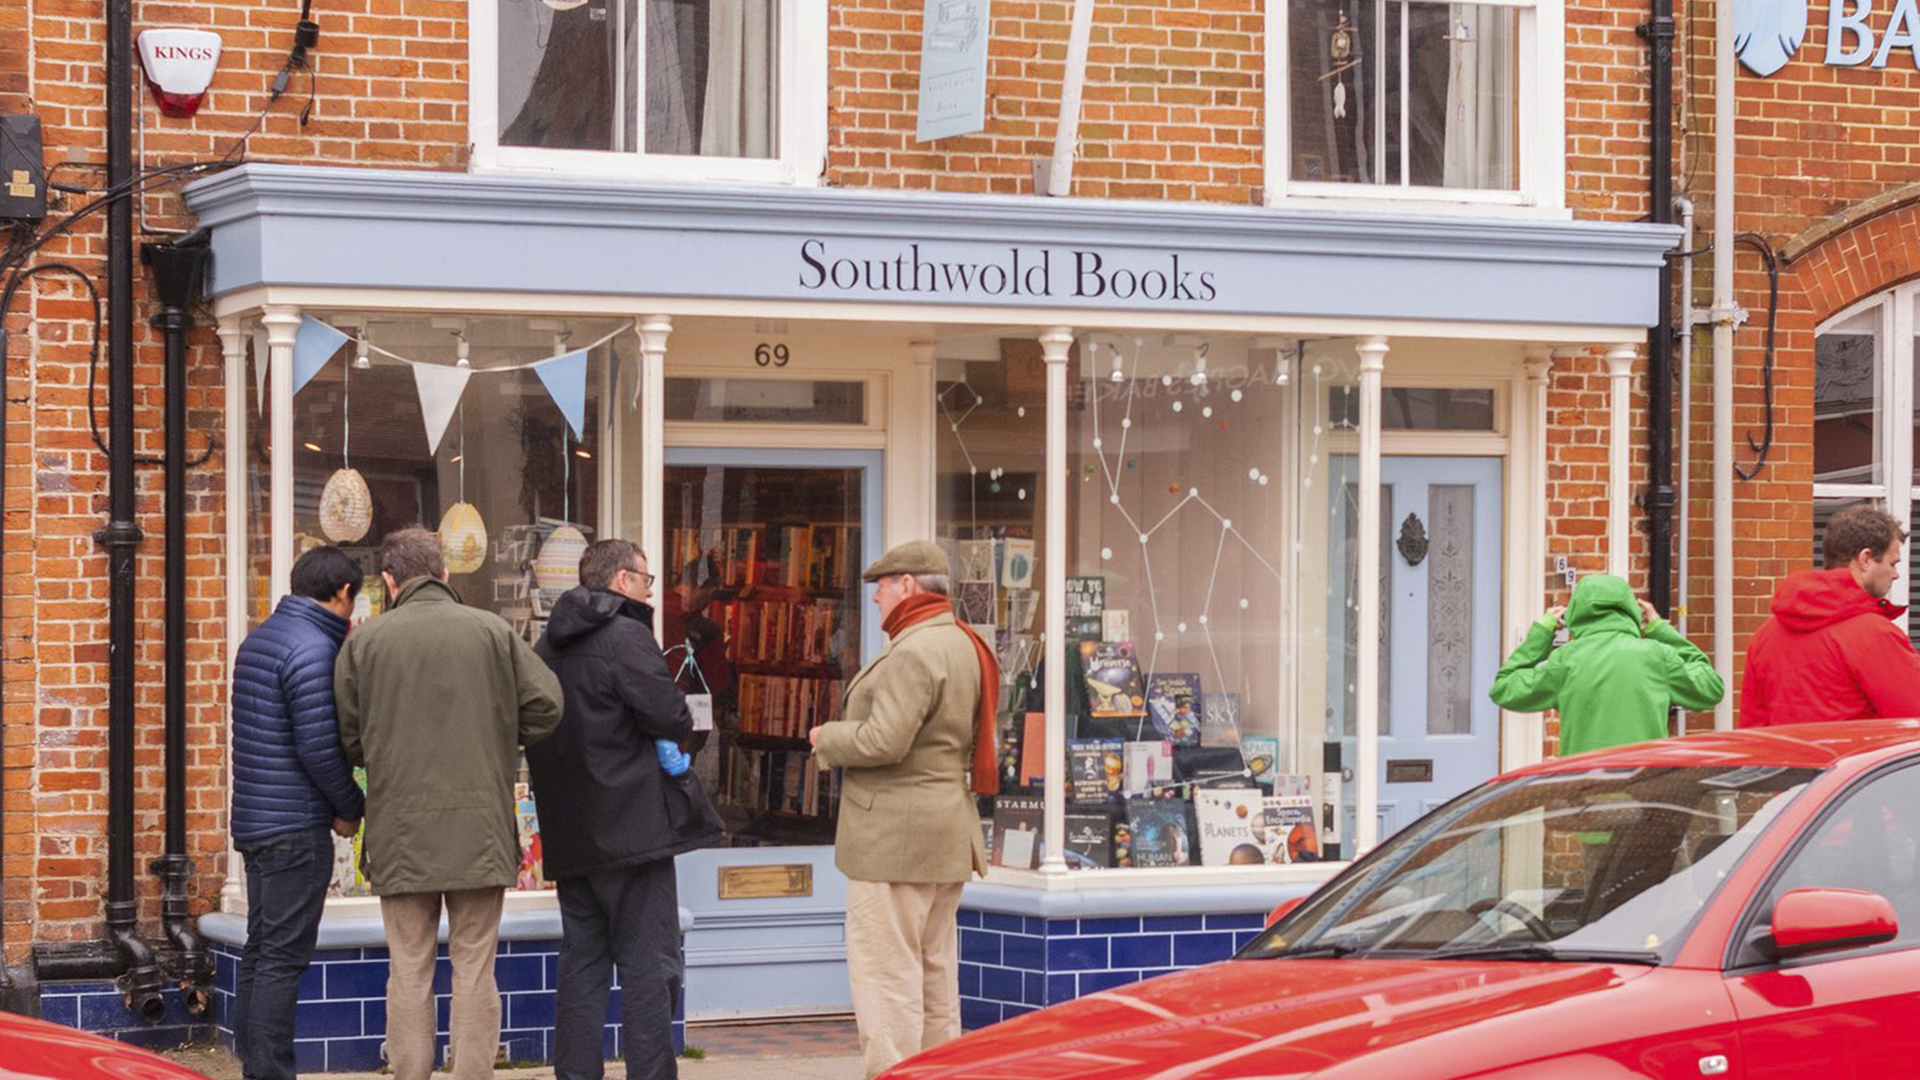 Southwold Books is actually a branch of Waterstones. Photo: Alamy Stock Photo